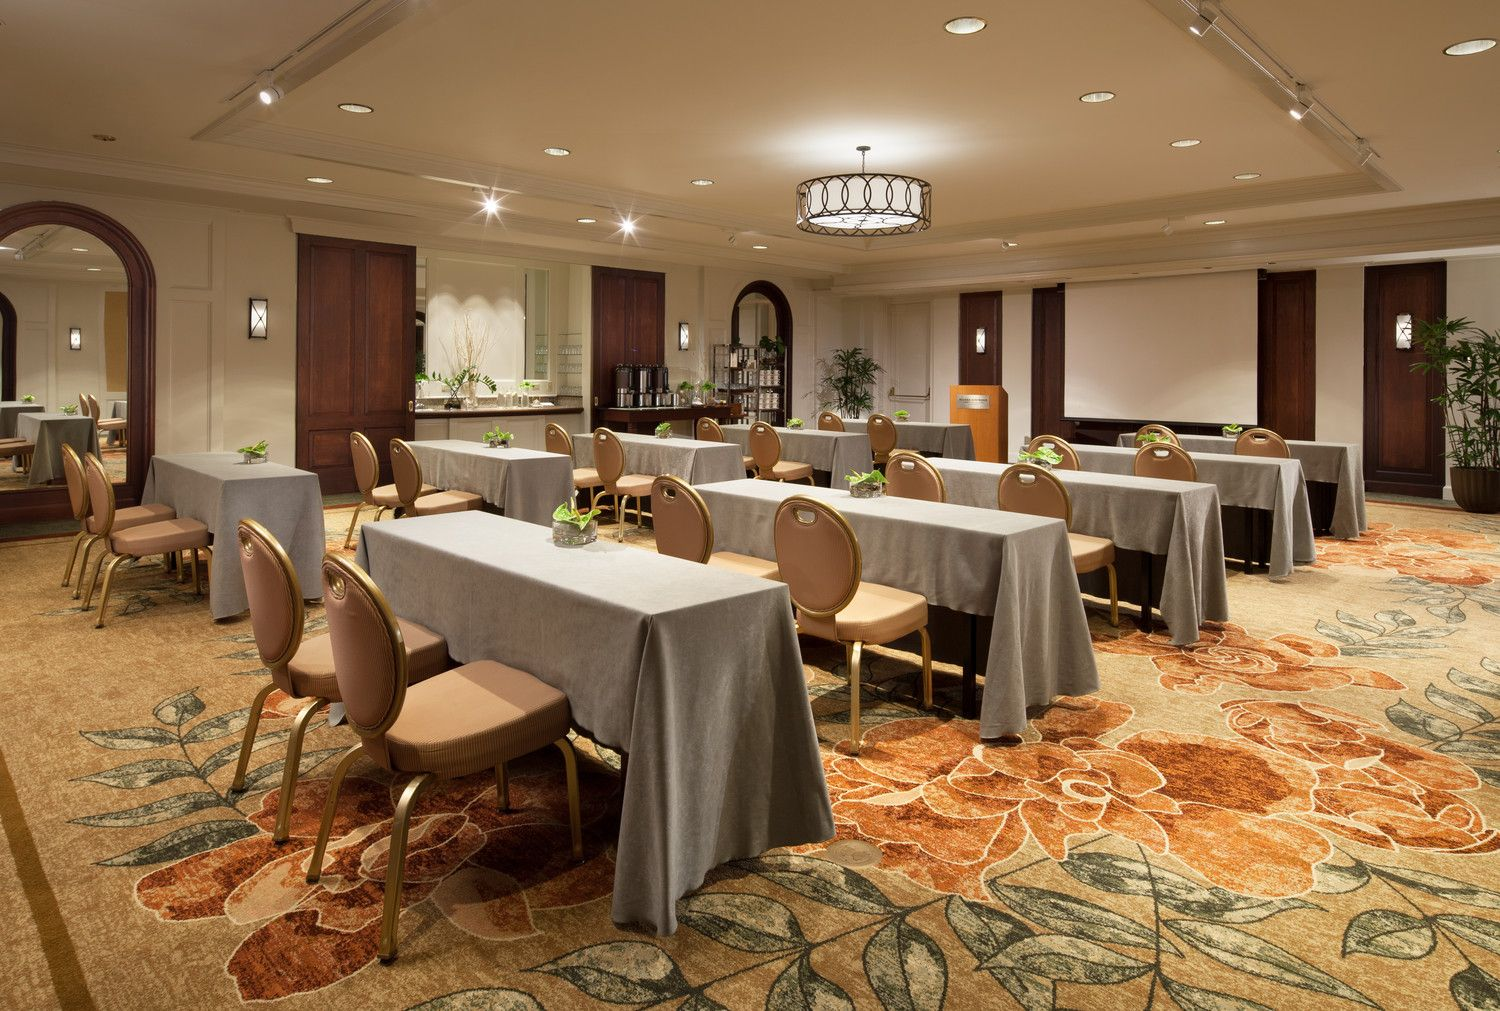 Moana Surfrider, A Westin Resort & Spa - Meetings